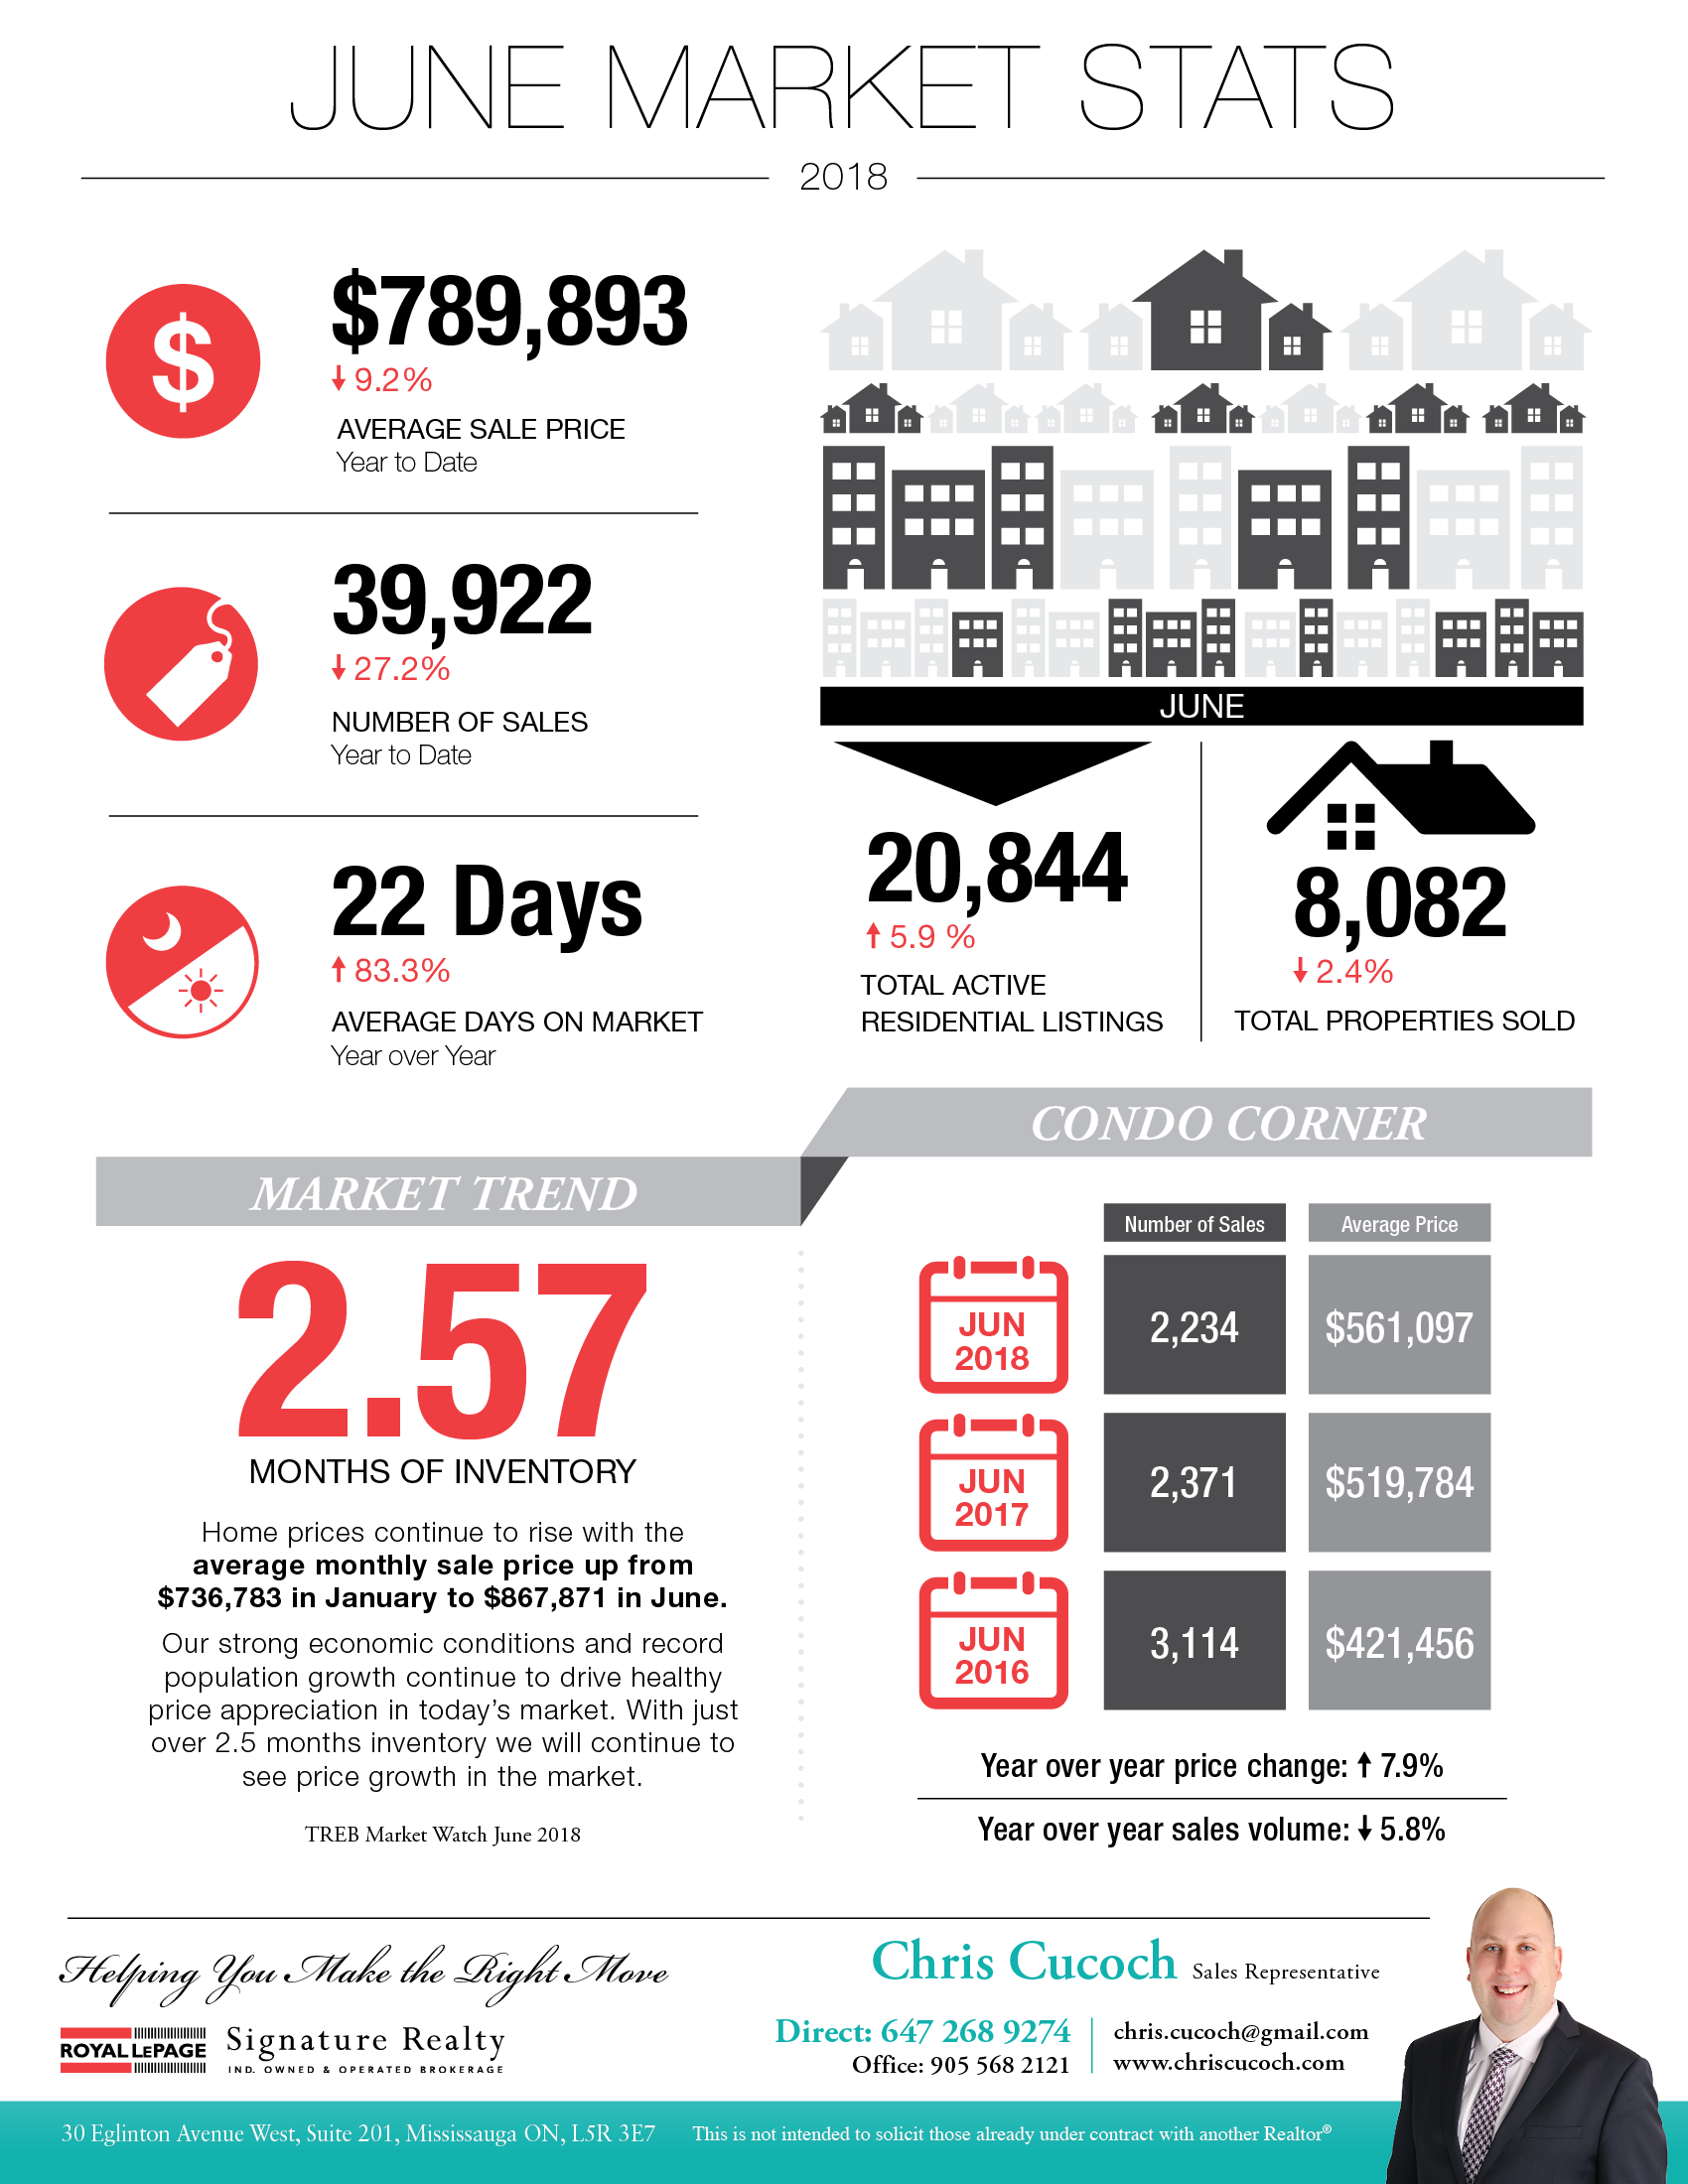 Toronto Real Estate Market Statistics Infographic for June 2018